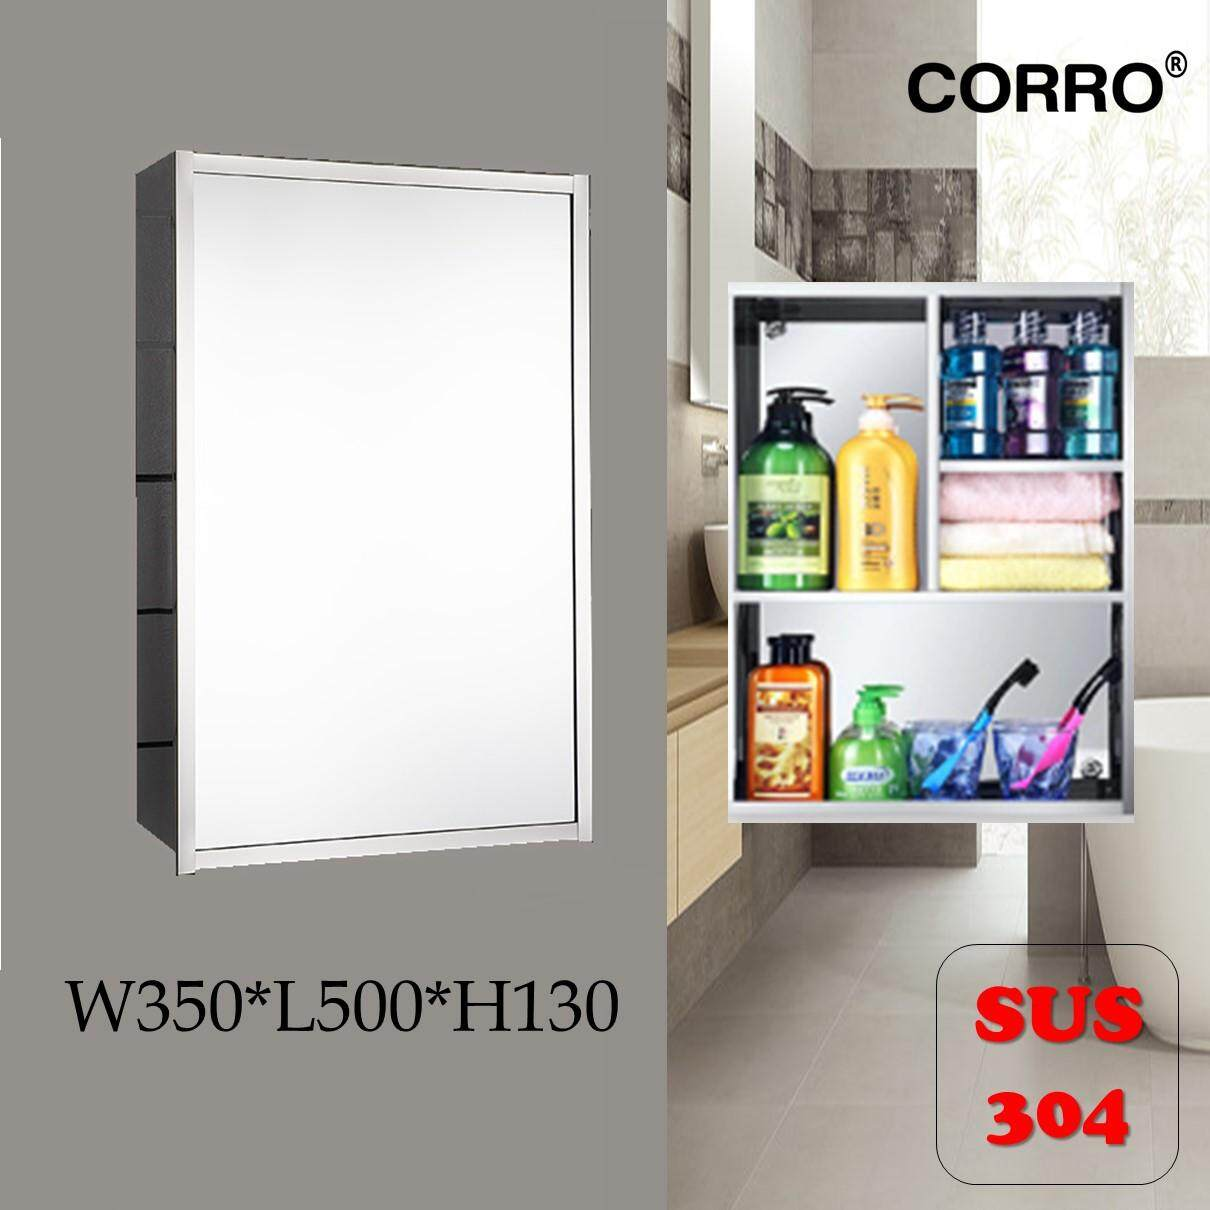 CORRO SUS304 100% Stainless Steel Bathroom Mirror Cabinet - L350 x H500 x W130